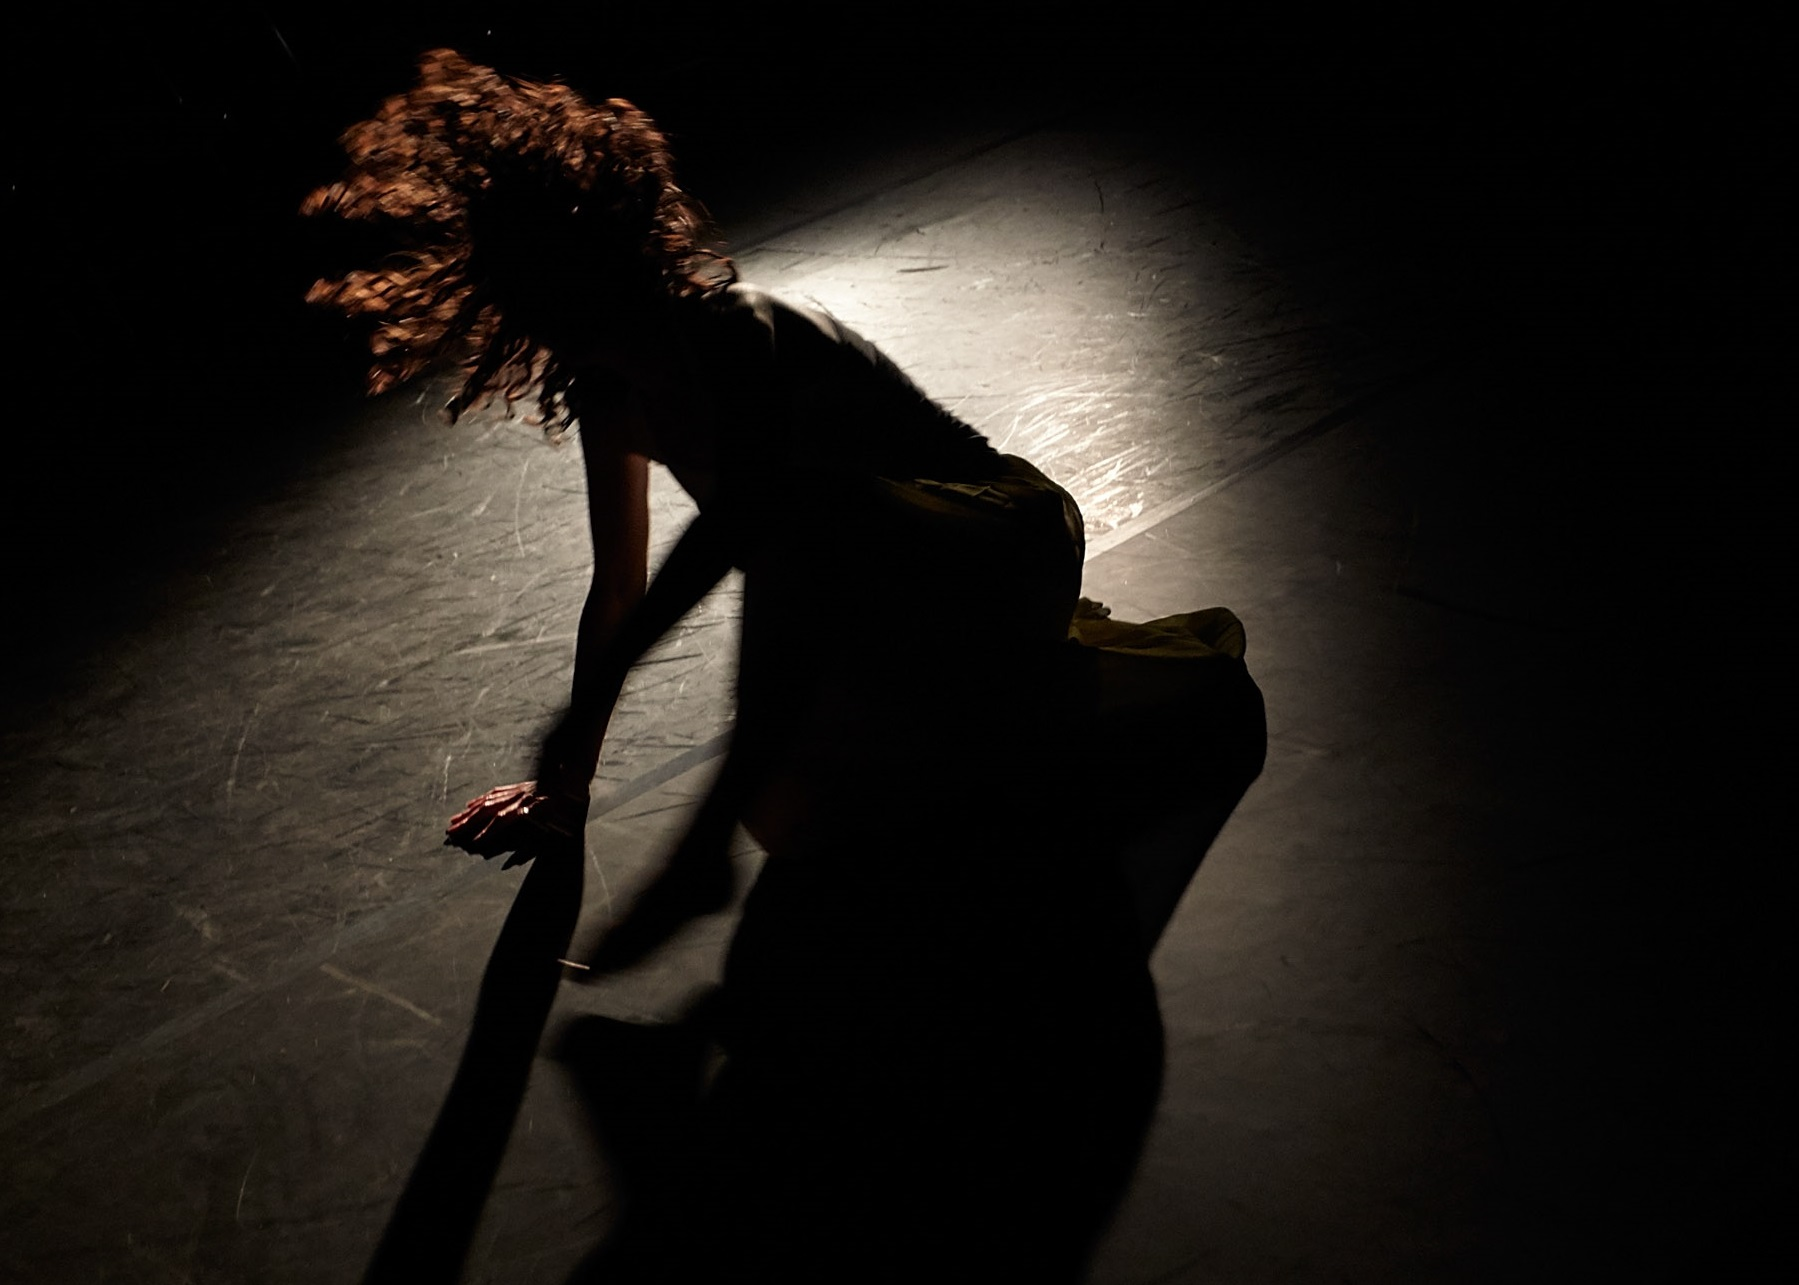 A woman crouching on the floor with a light shinging on her. Her face is hidden